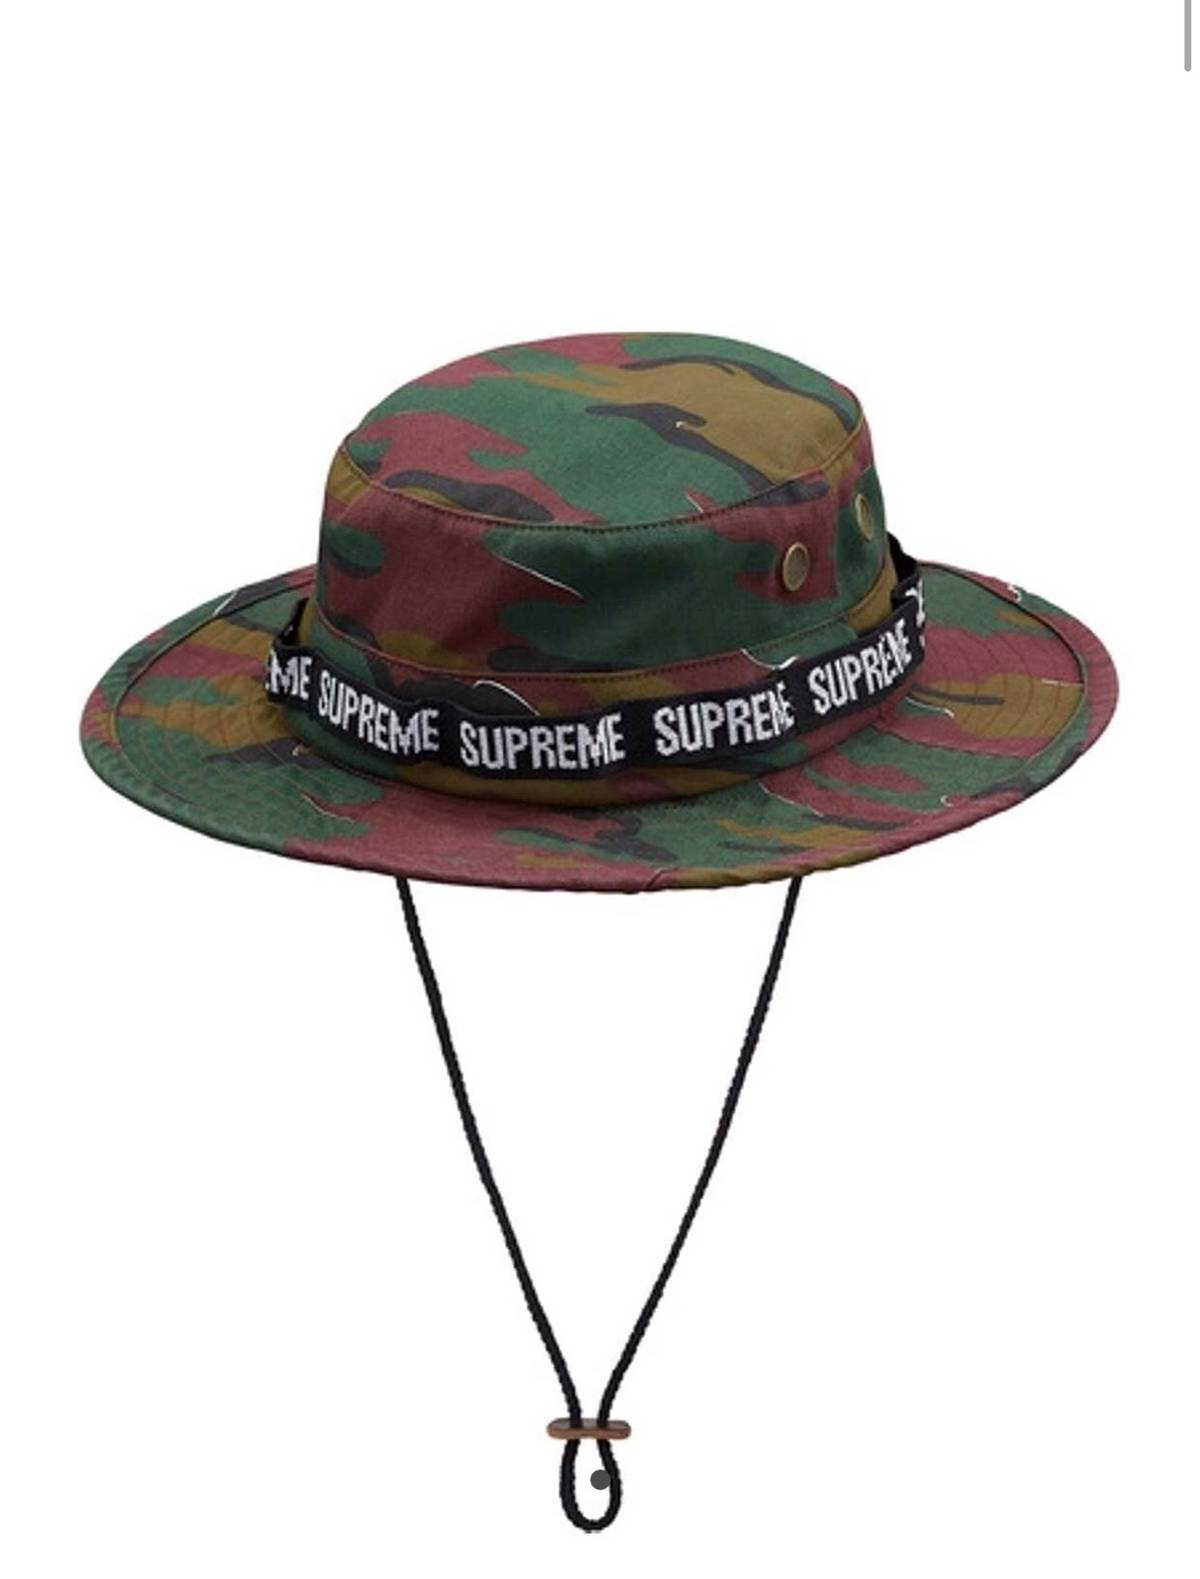 Supreme Boonie Hat Size one size - Hats for Sale - Grailed d66214bc0b8